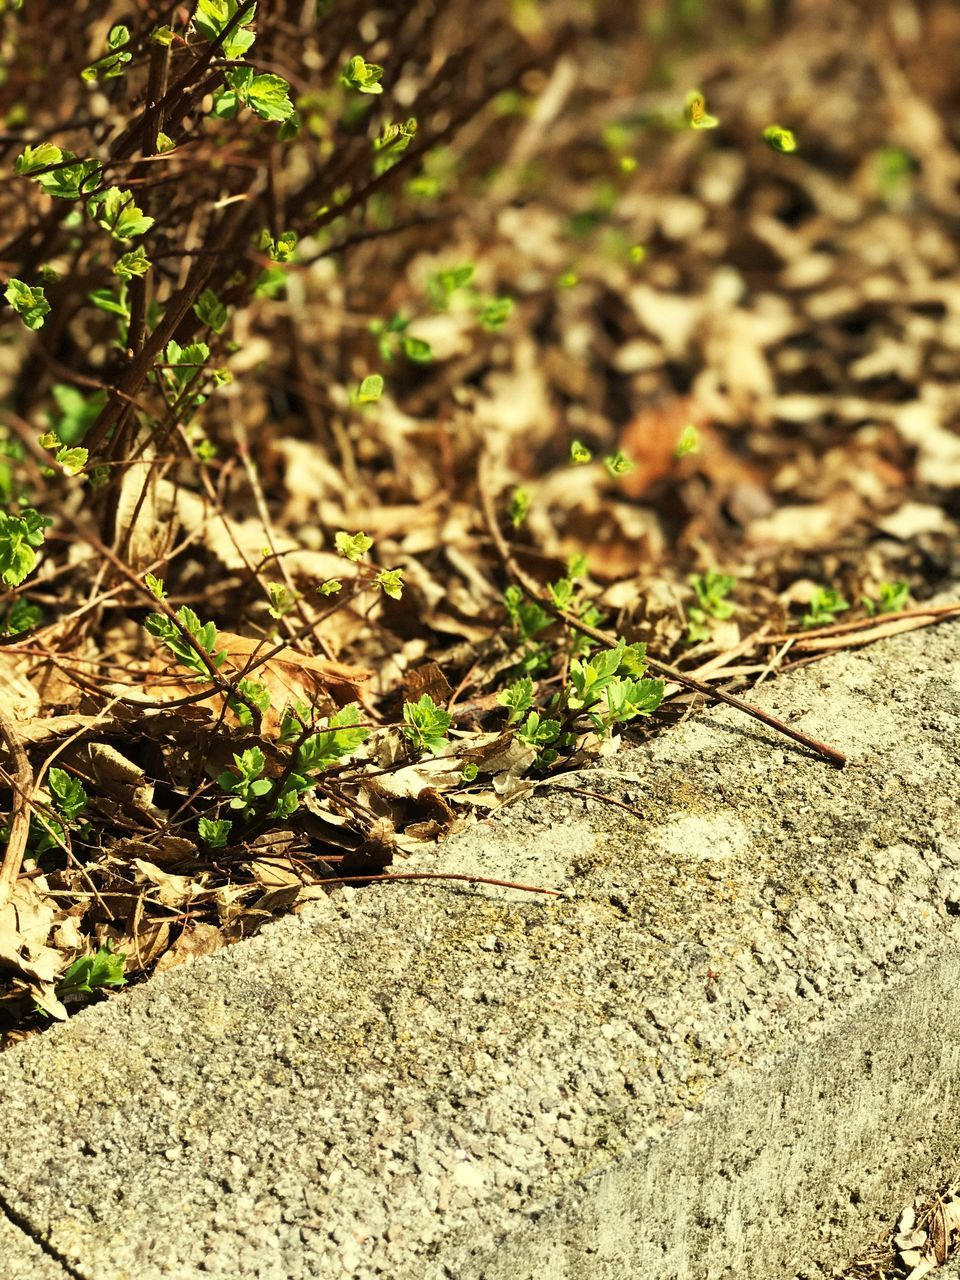 nature, outdoors, no people, day, sunlight, close-up, growth, animal themes